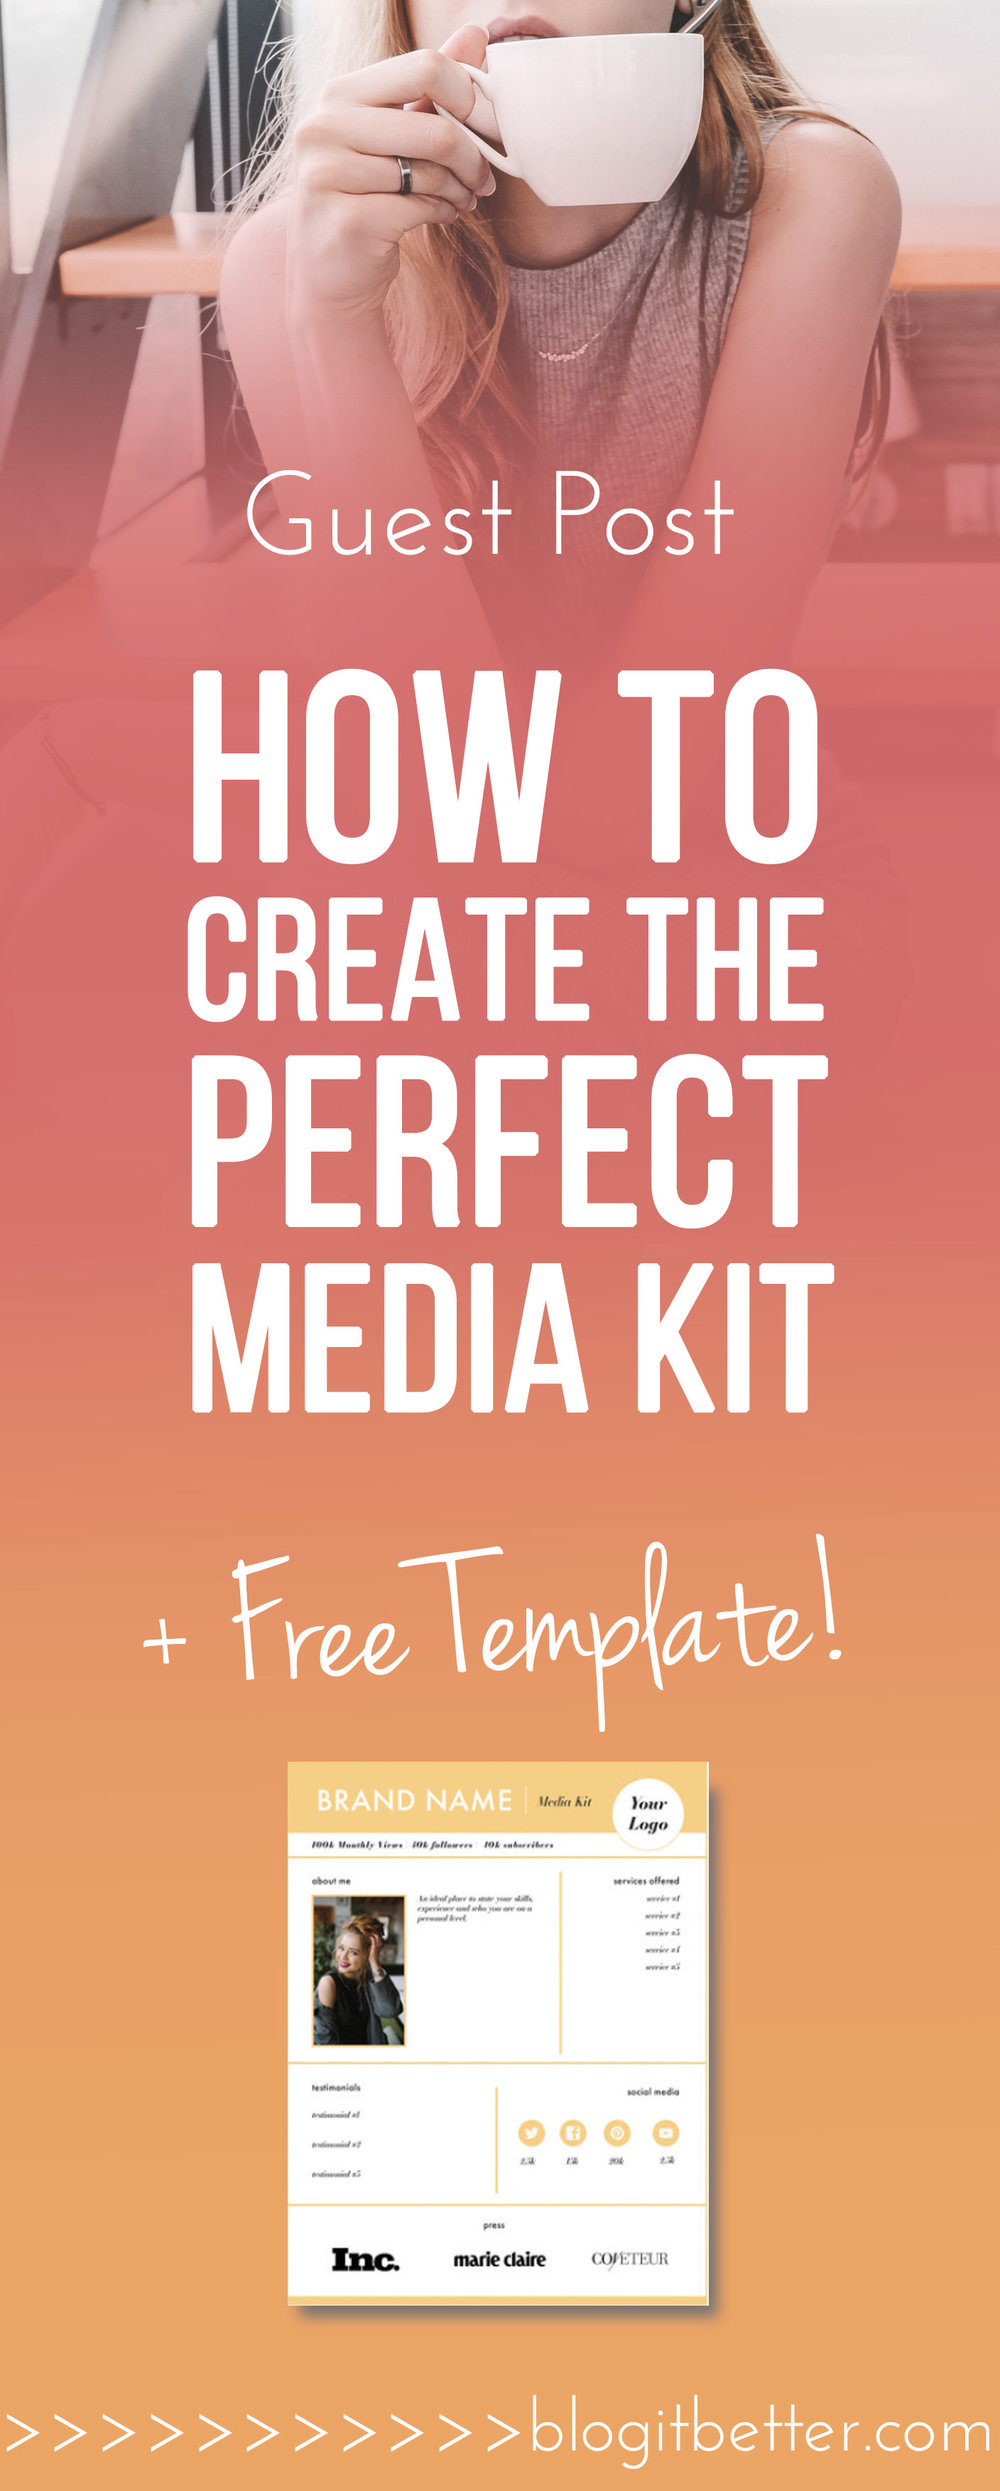 >>FREE Template<< How to create the perfect media kit! Blog it Better!